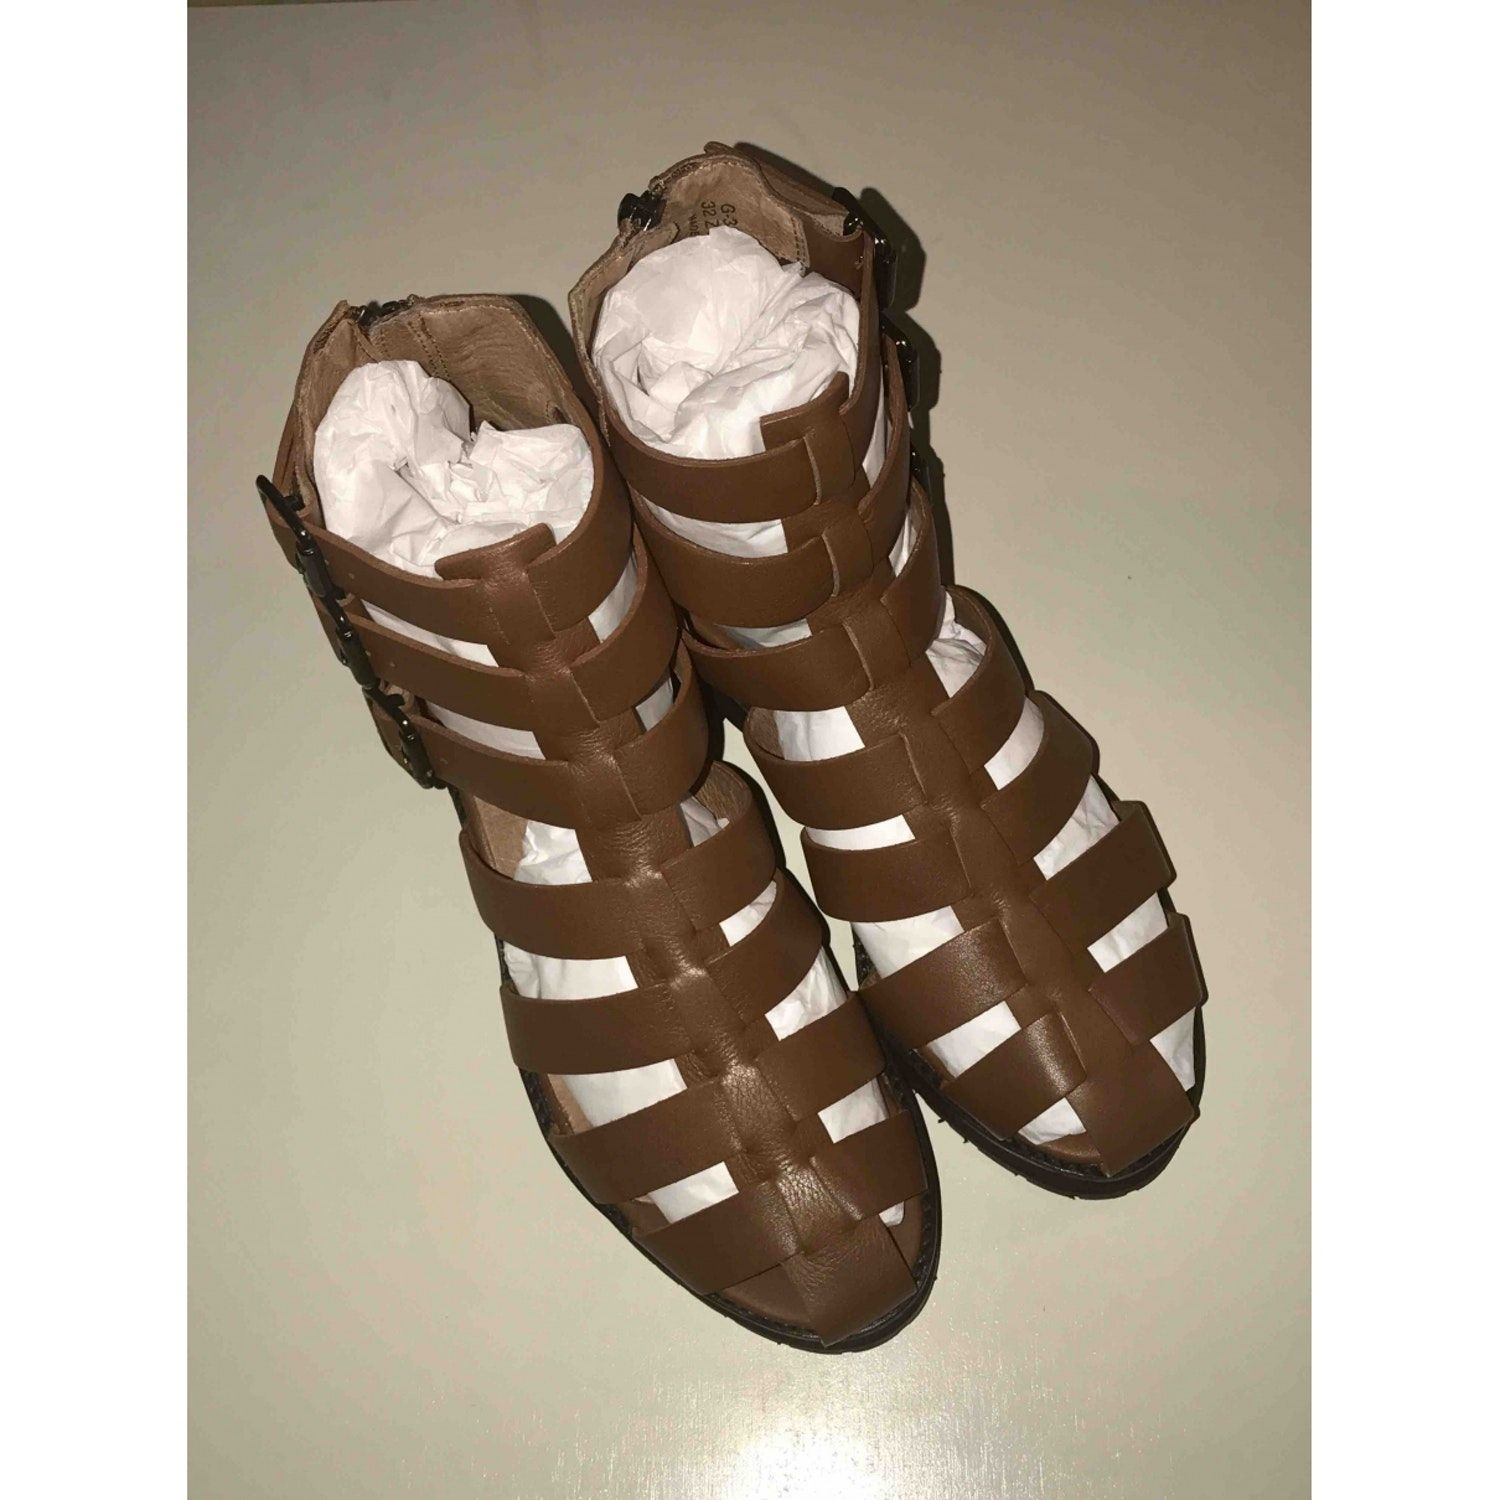 Leather sandals brown size 5 uk in leather